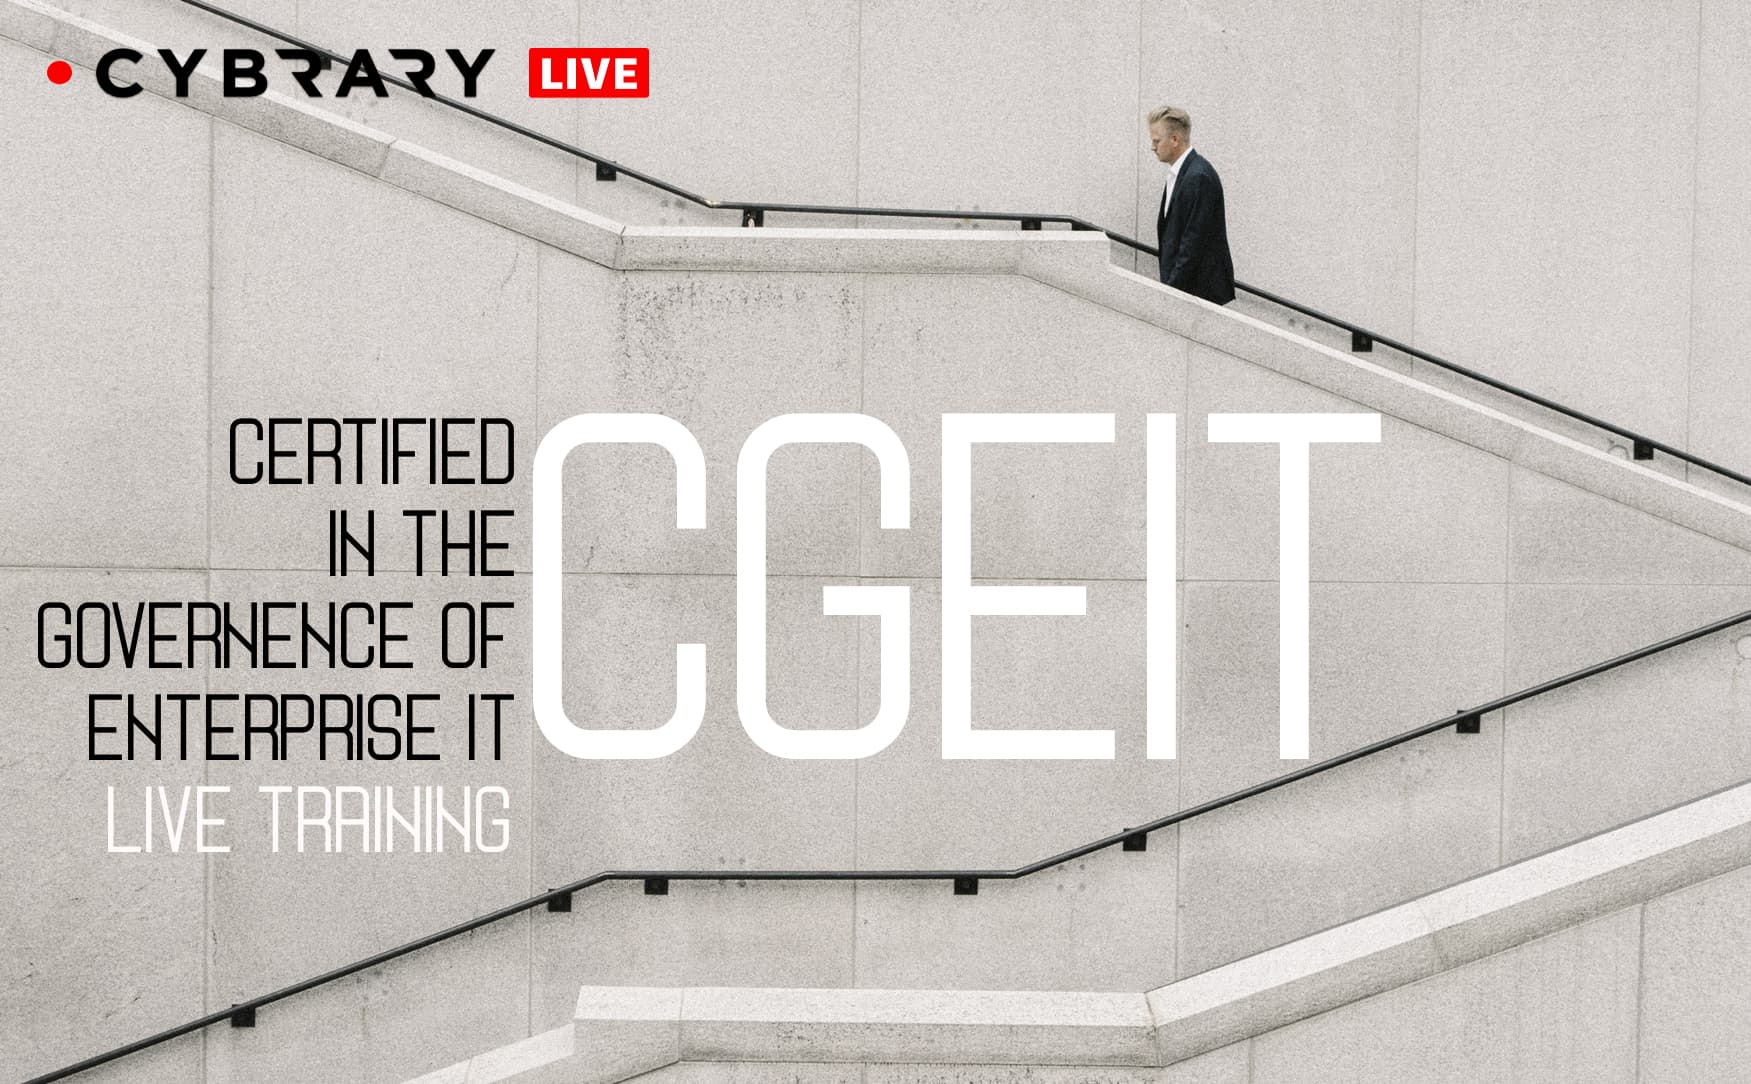 Certified in The Governance of Enterprise IT [CGEIT] Live Online Training Series